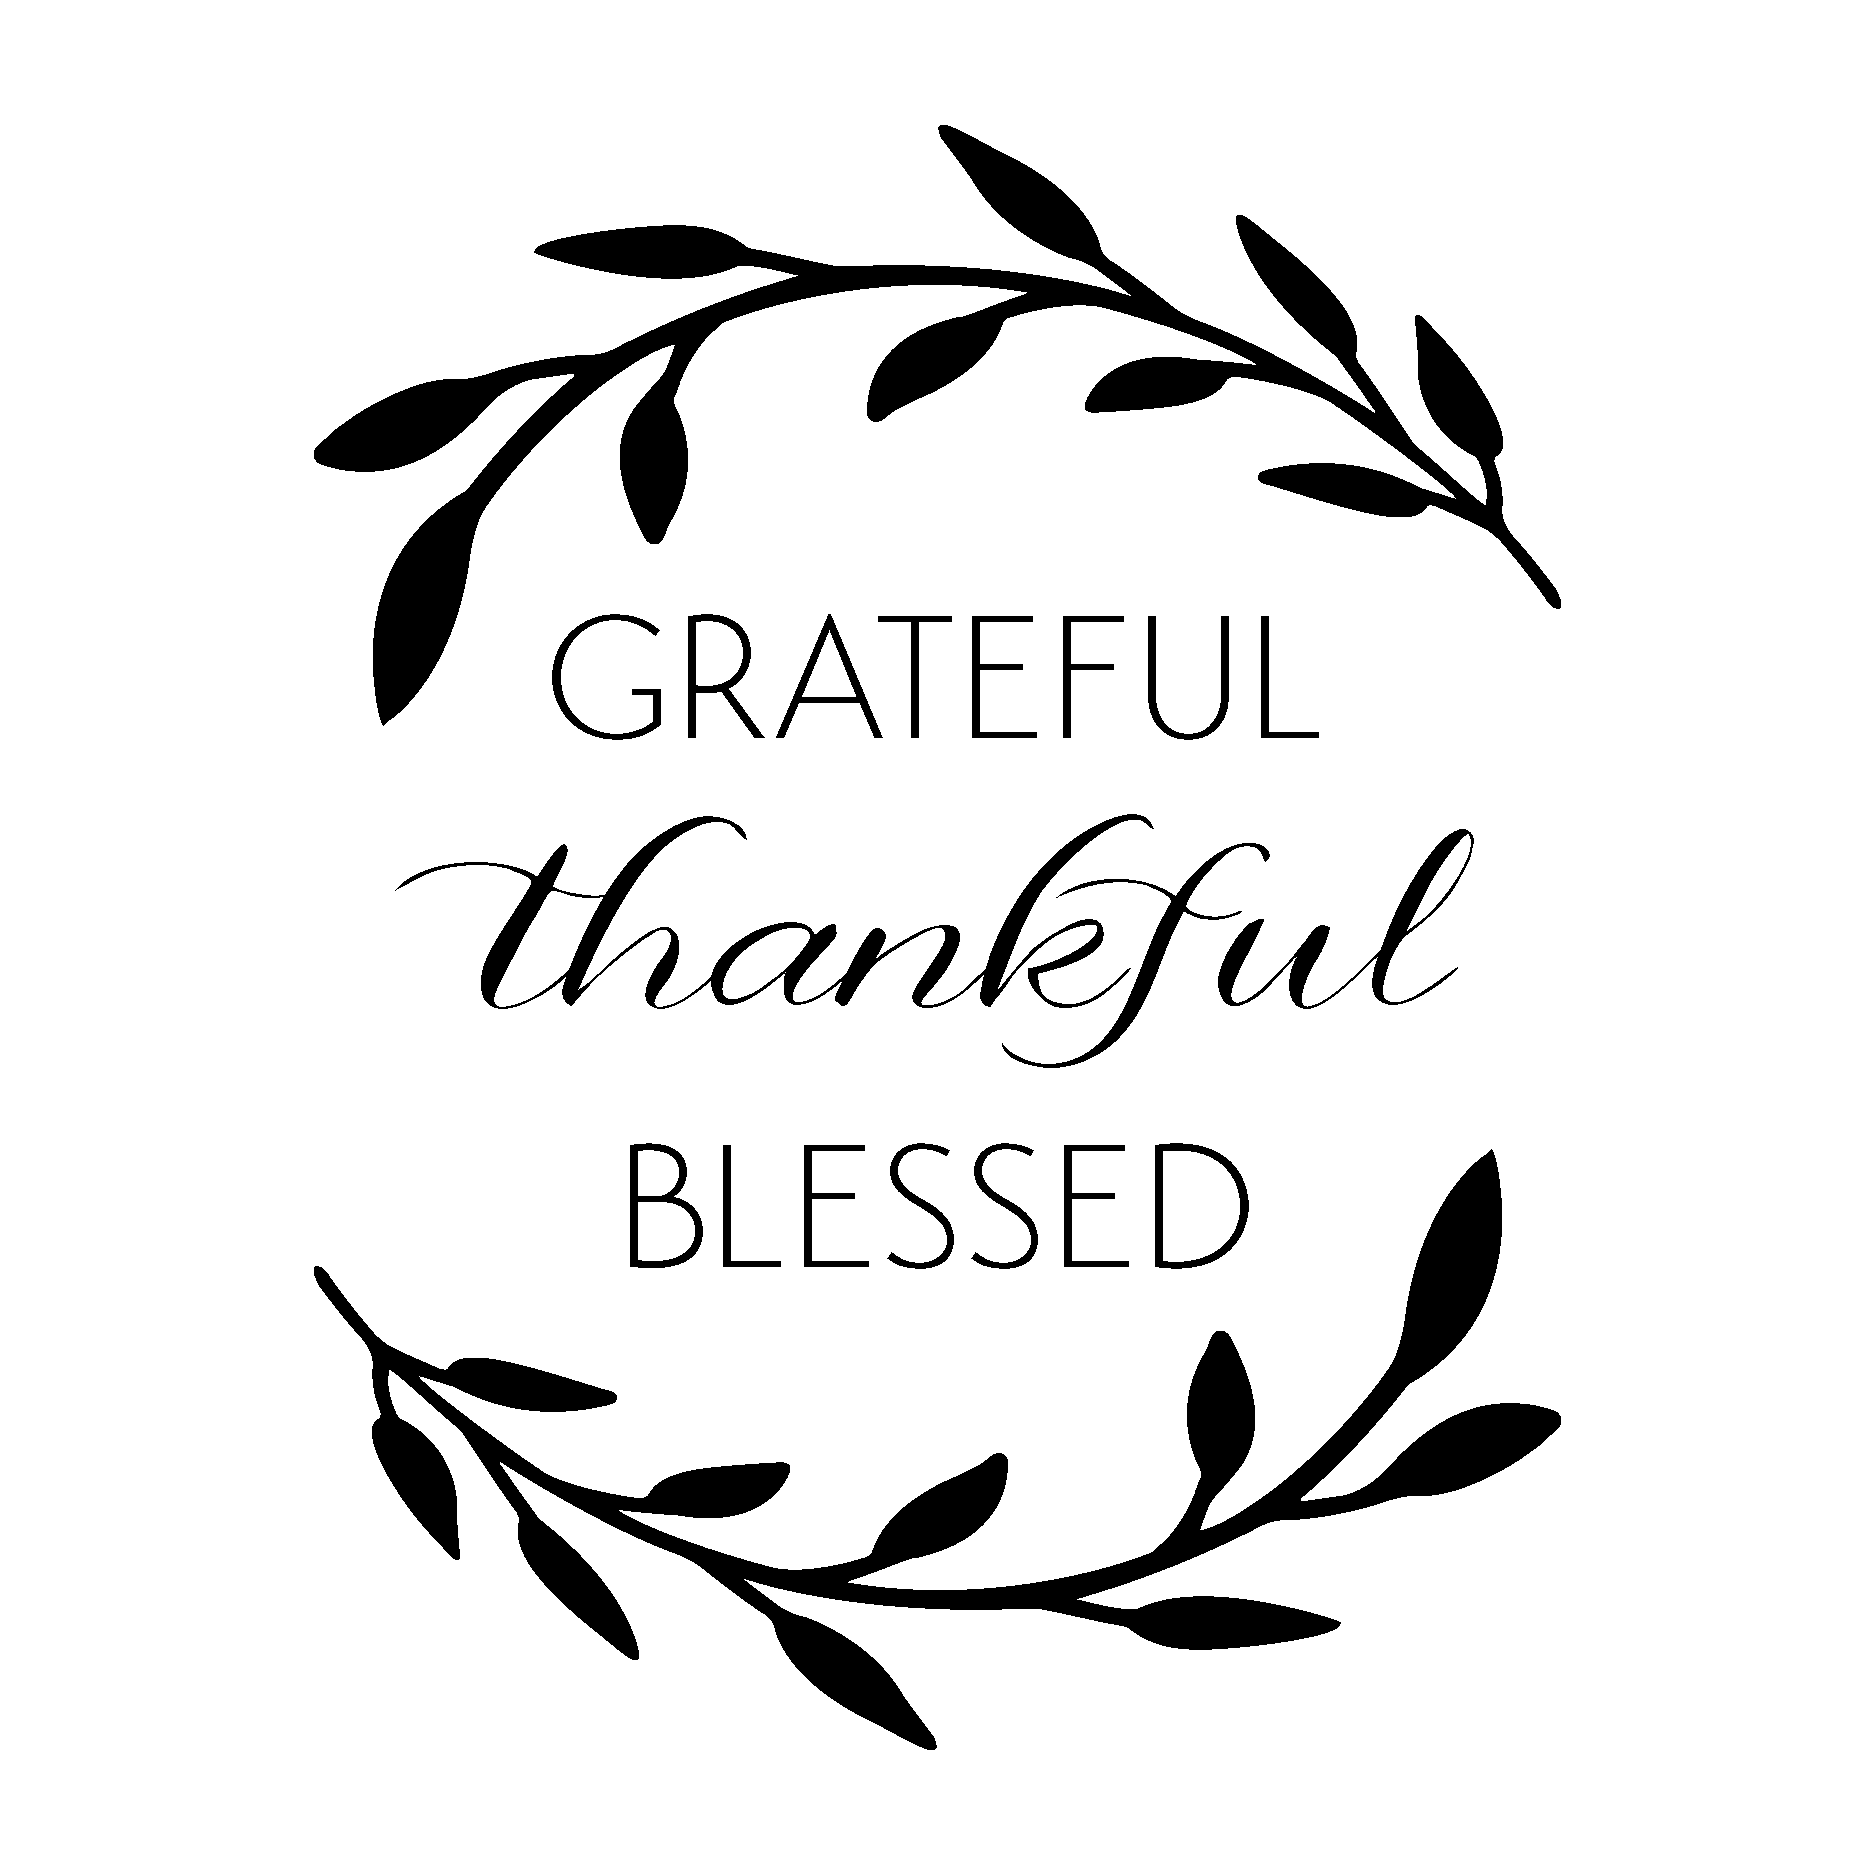 Grateful Thankful Blessed Wall Quotes Decal Wallquotes Com